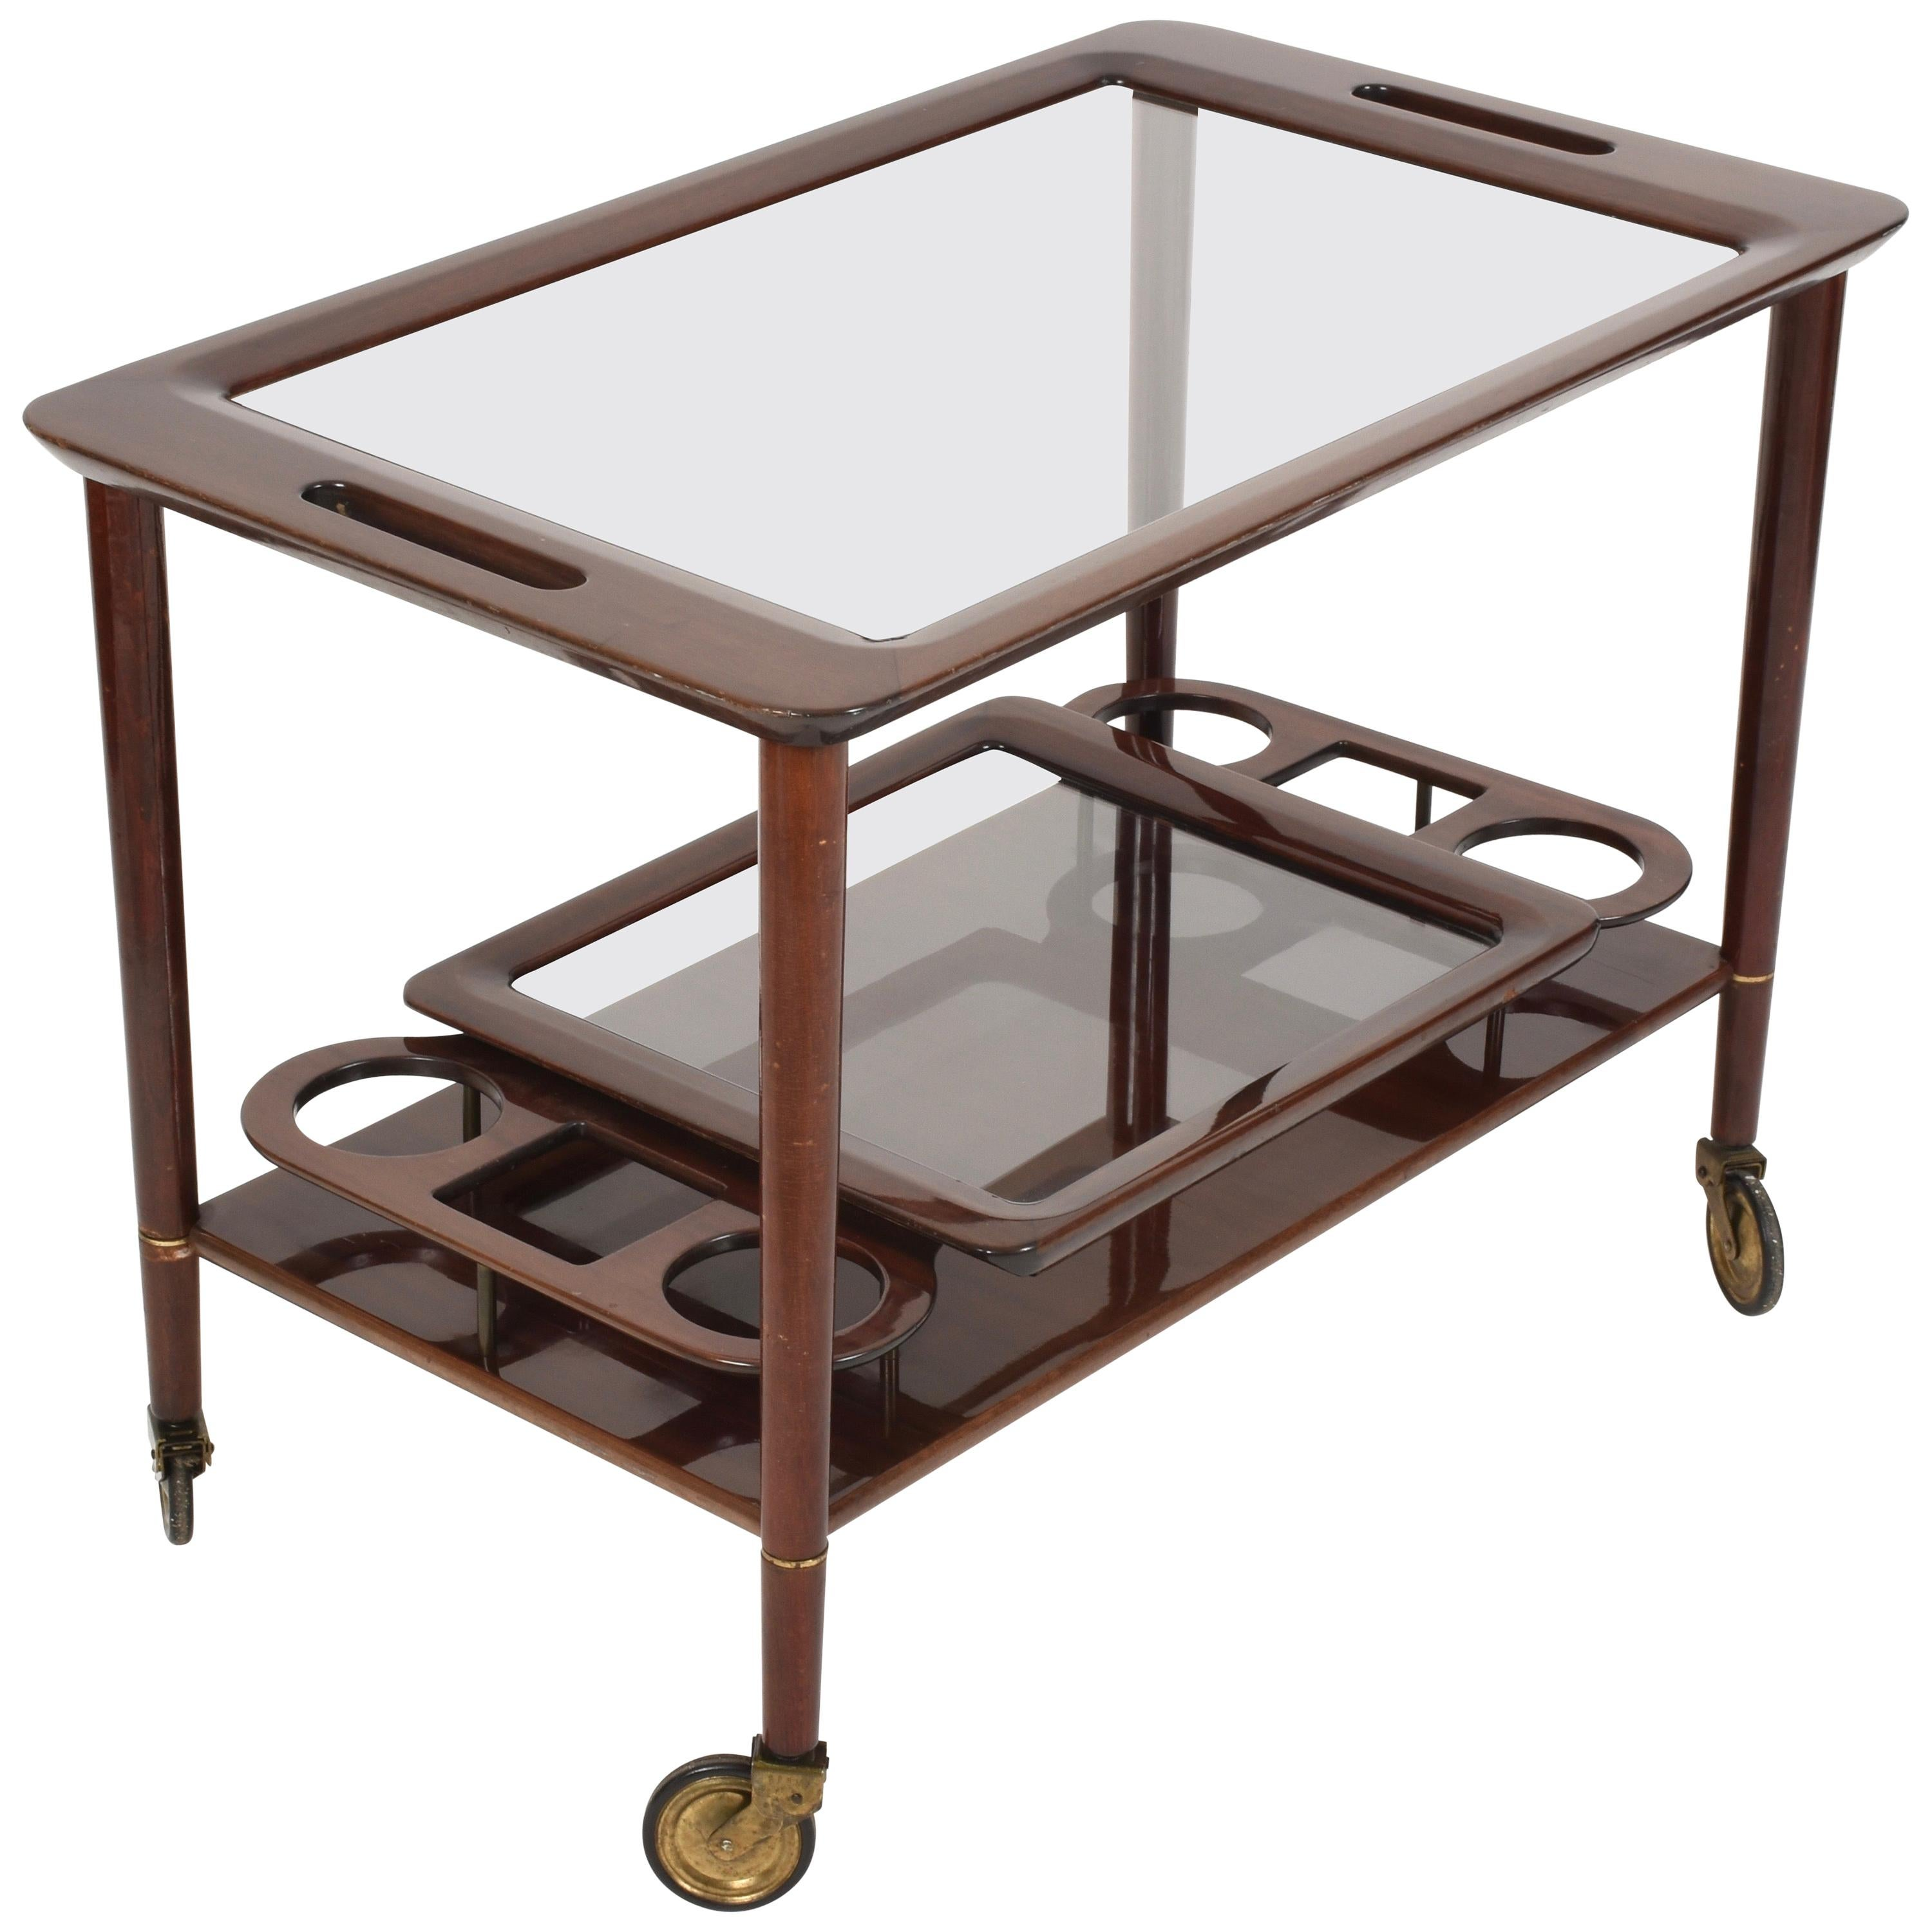 Midcentury Cesare Lacca Wood Italian Bar Cart with Glass Serving Trays 1950s